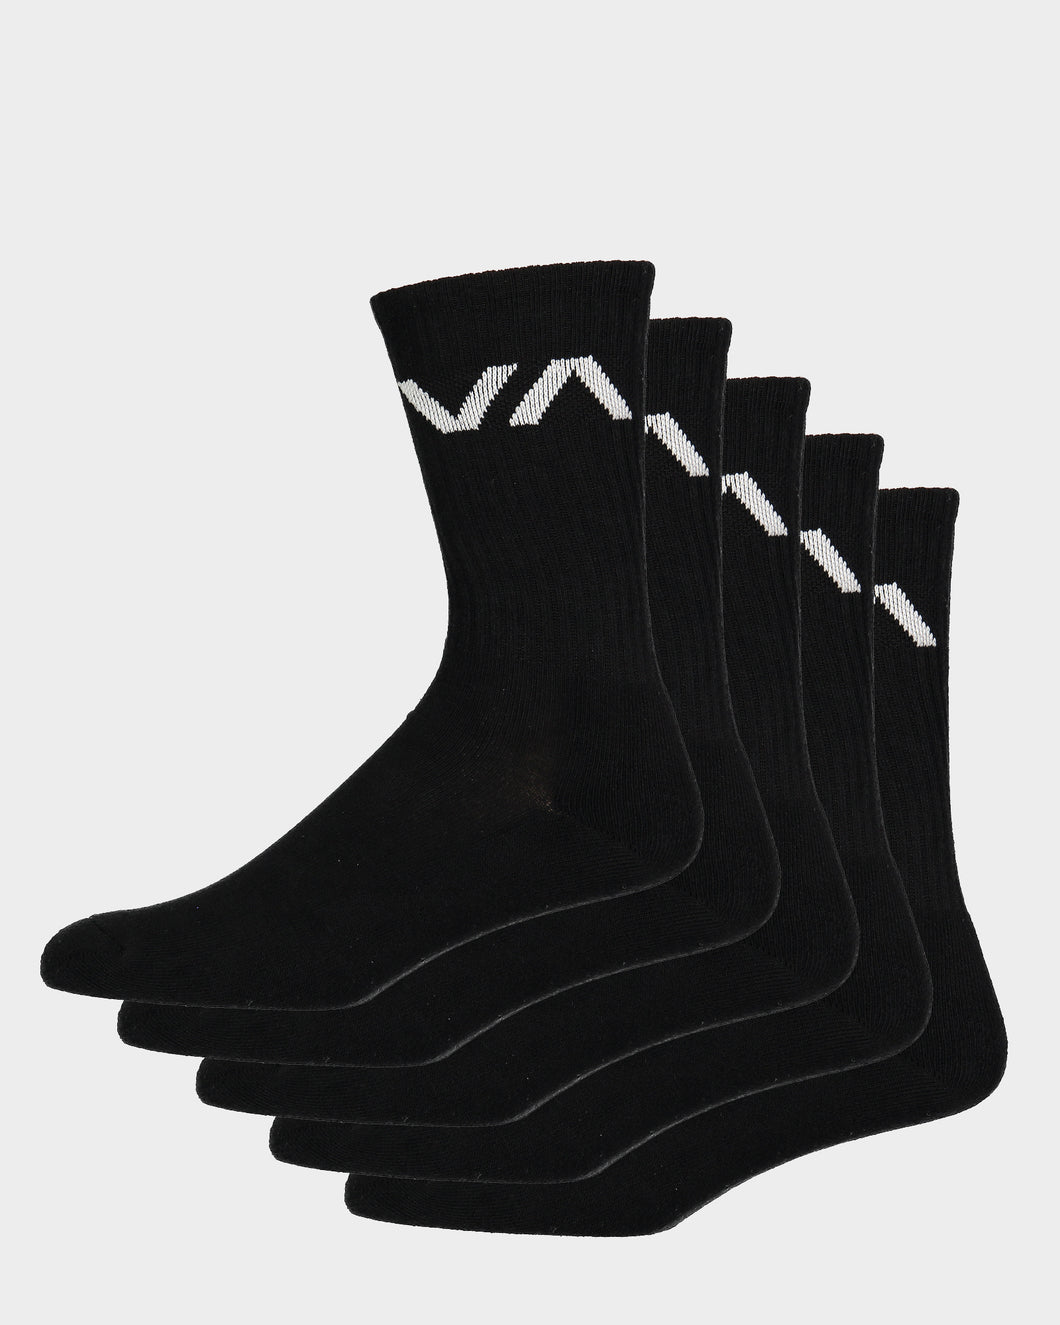 RVCA VA Sport Sock Black - 5 Pack